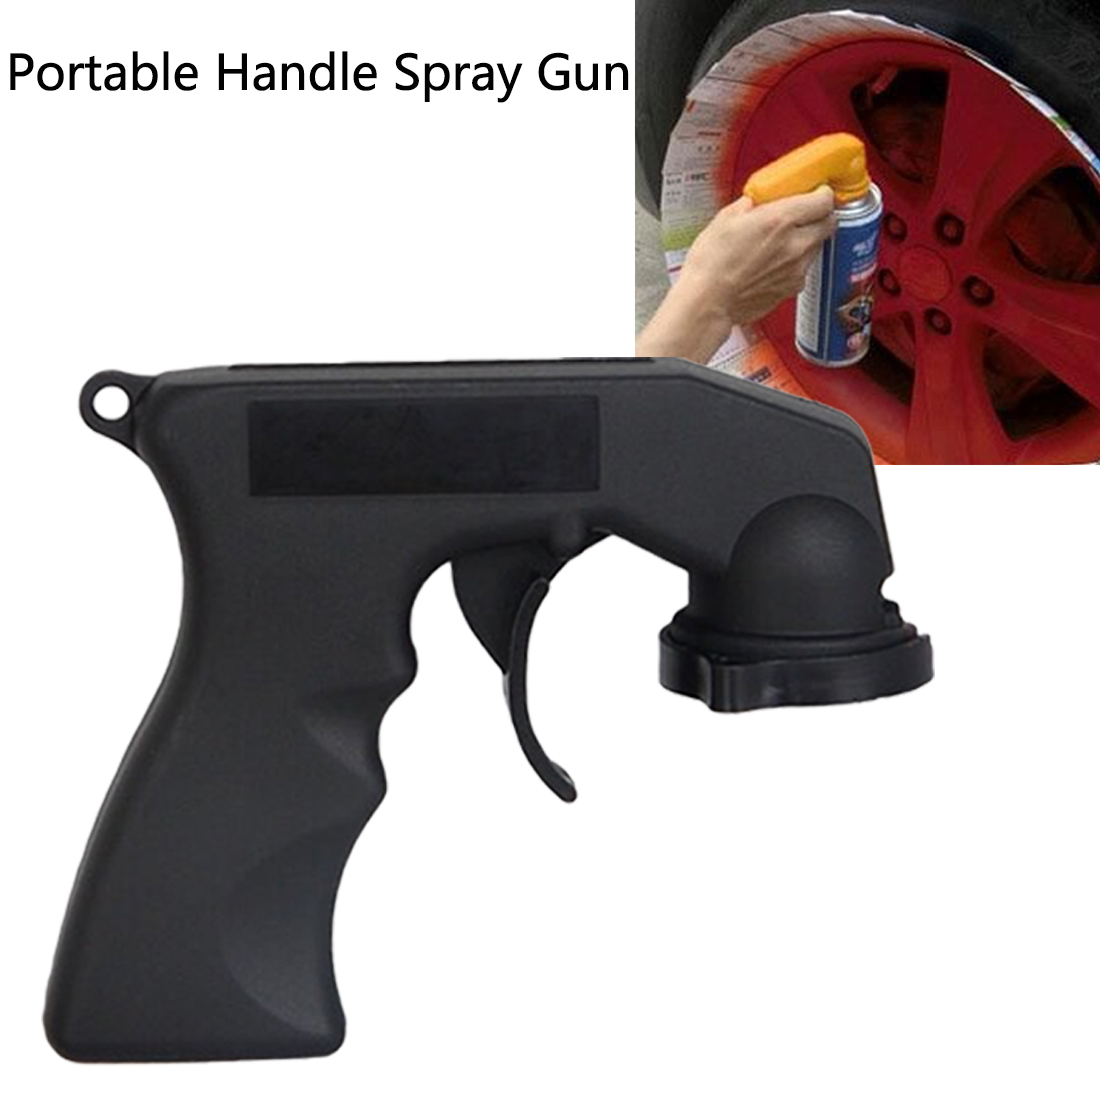 1Pc PP Material Car Styling Aerosol Spray Can Handle With Full Grip Trigger For Painting